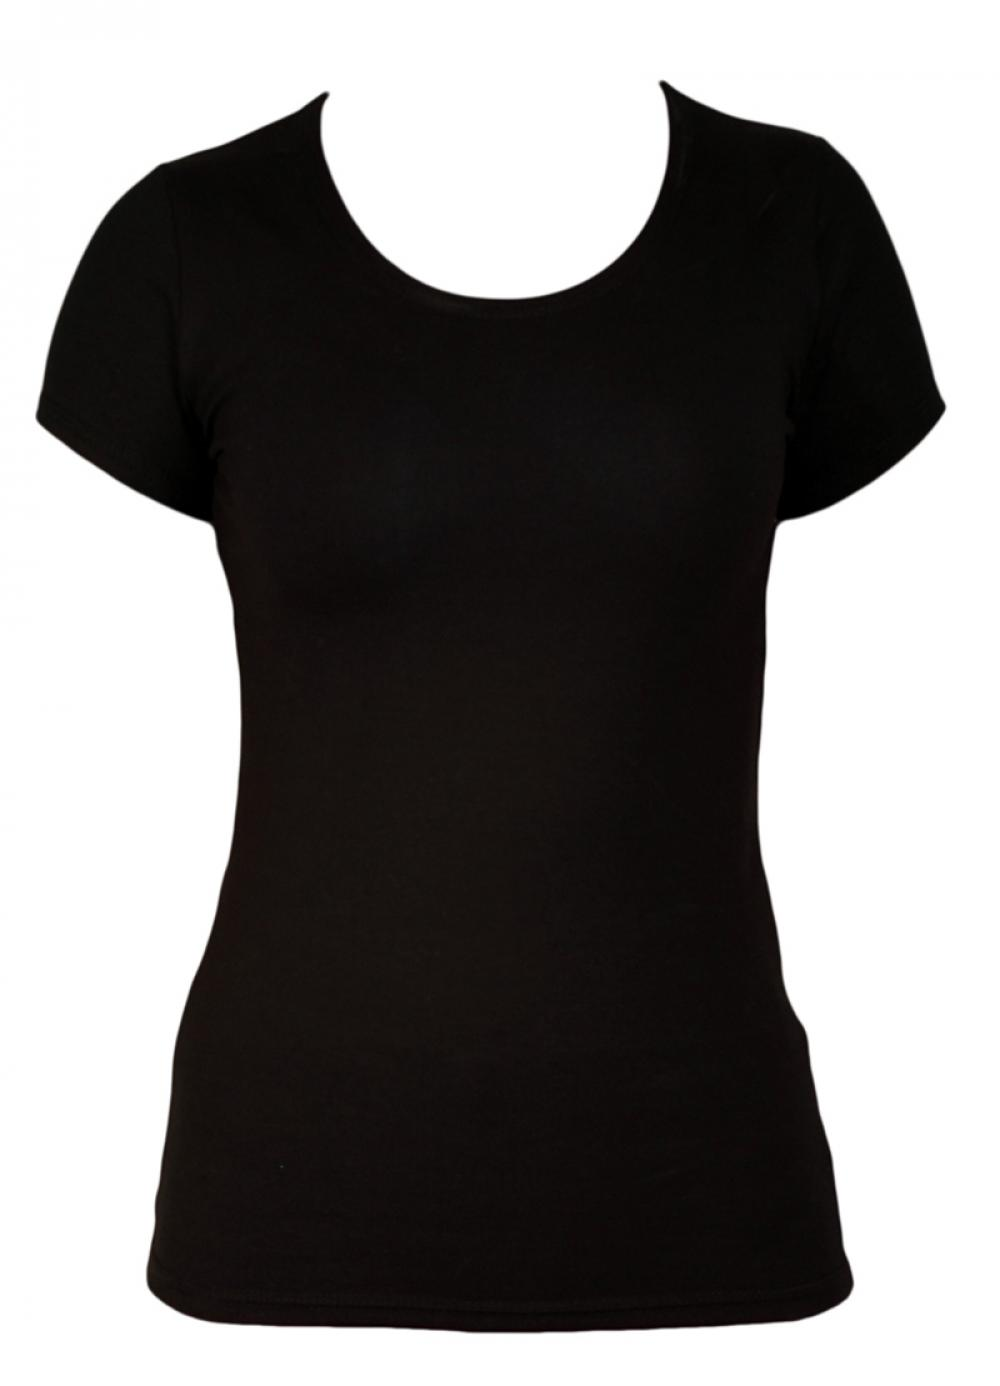 t-shirt_bw_black_v.jpg